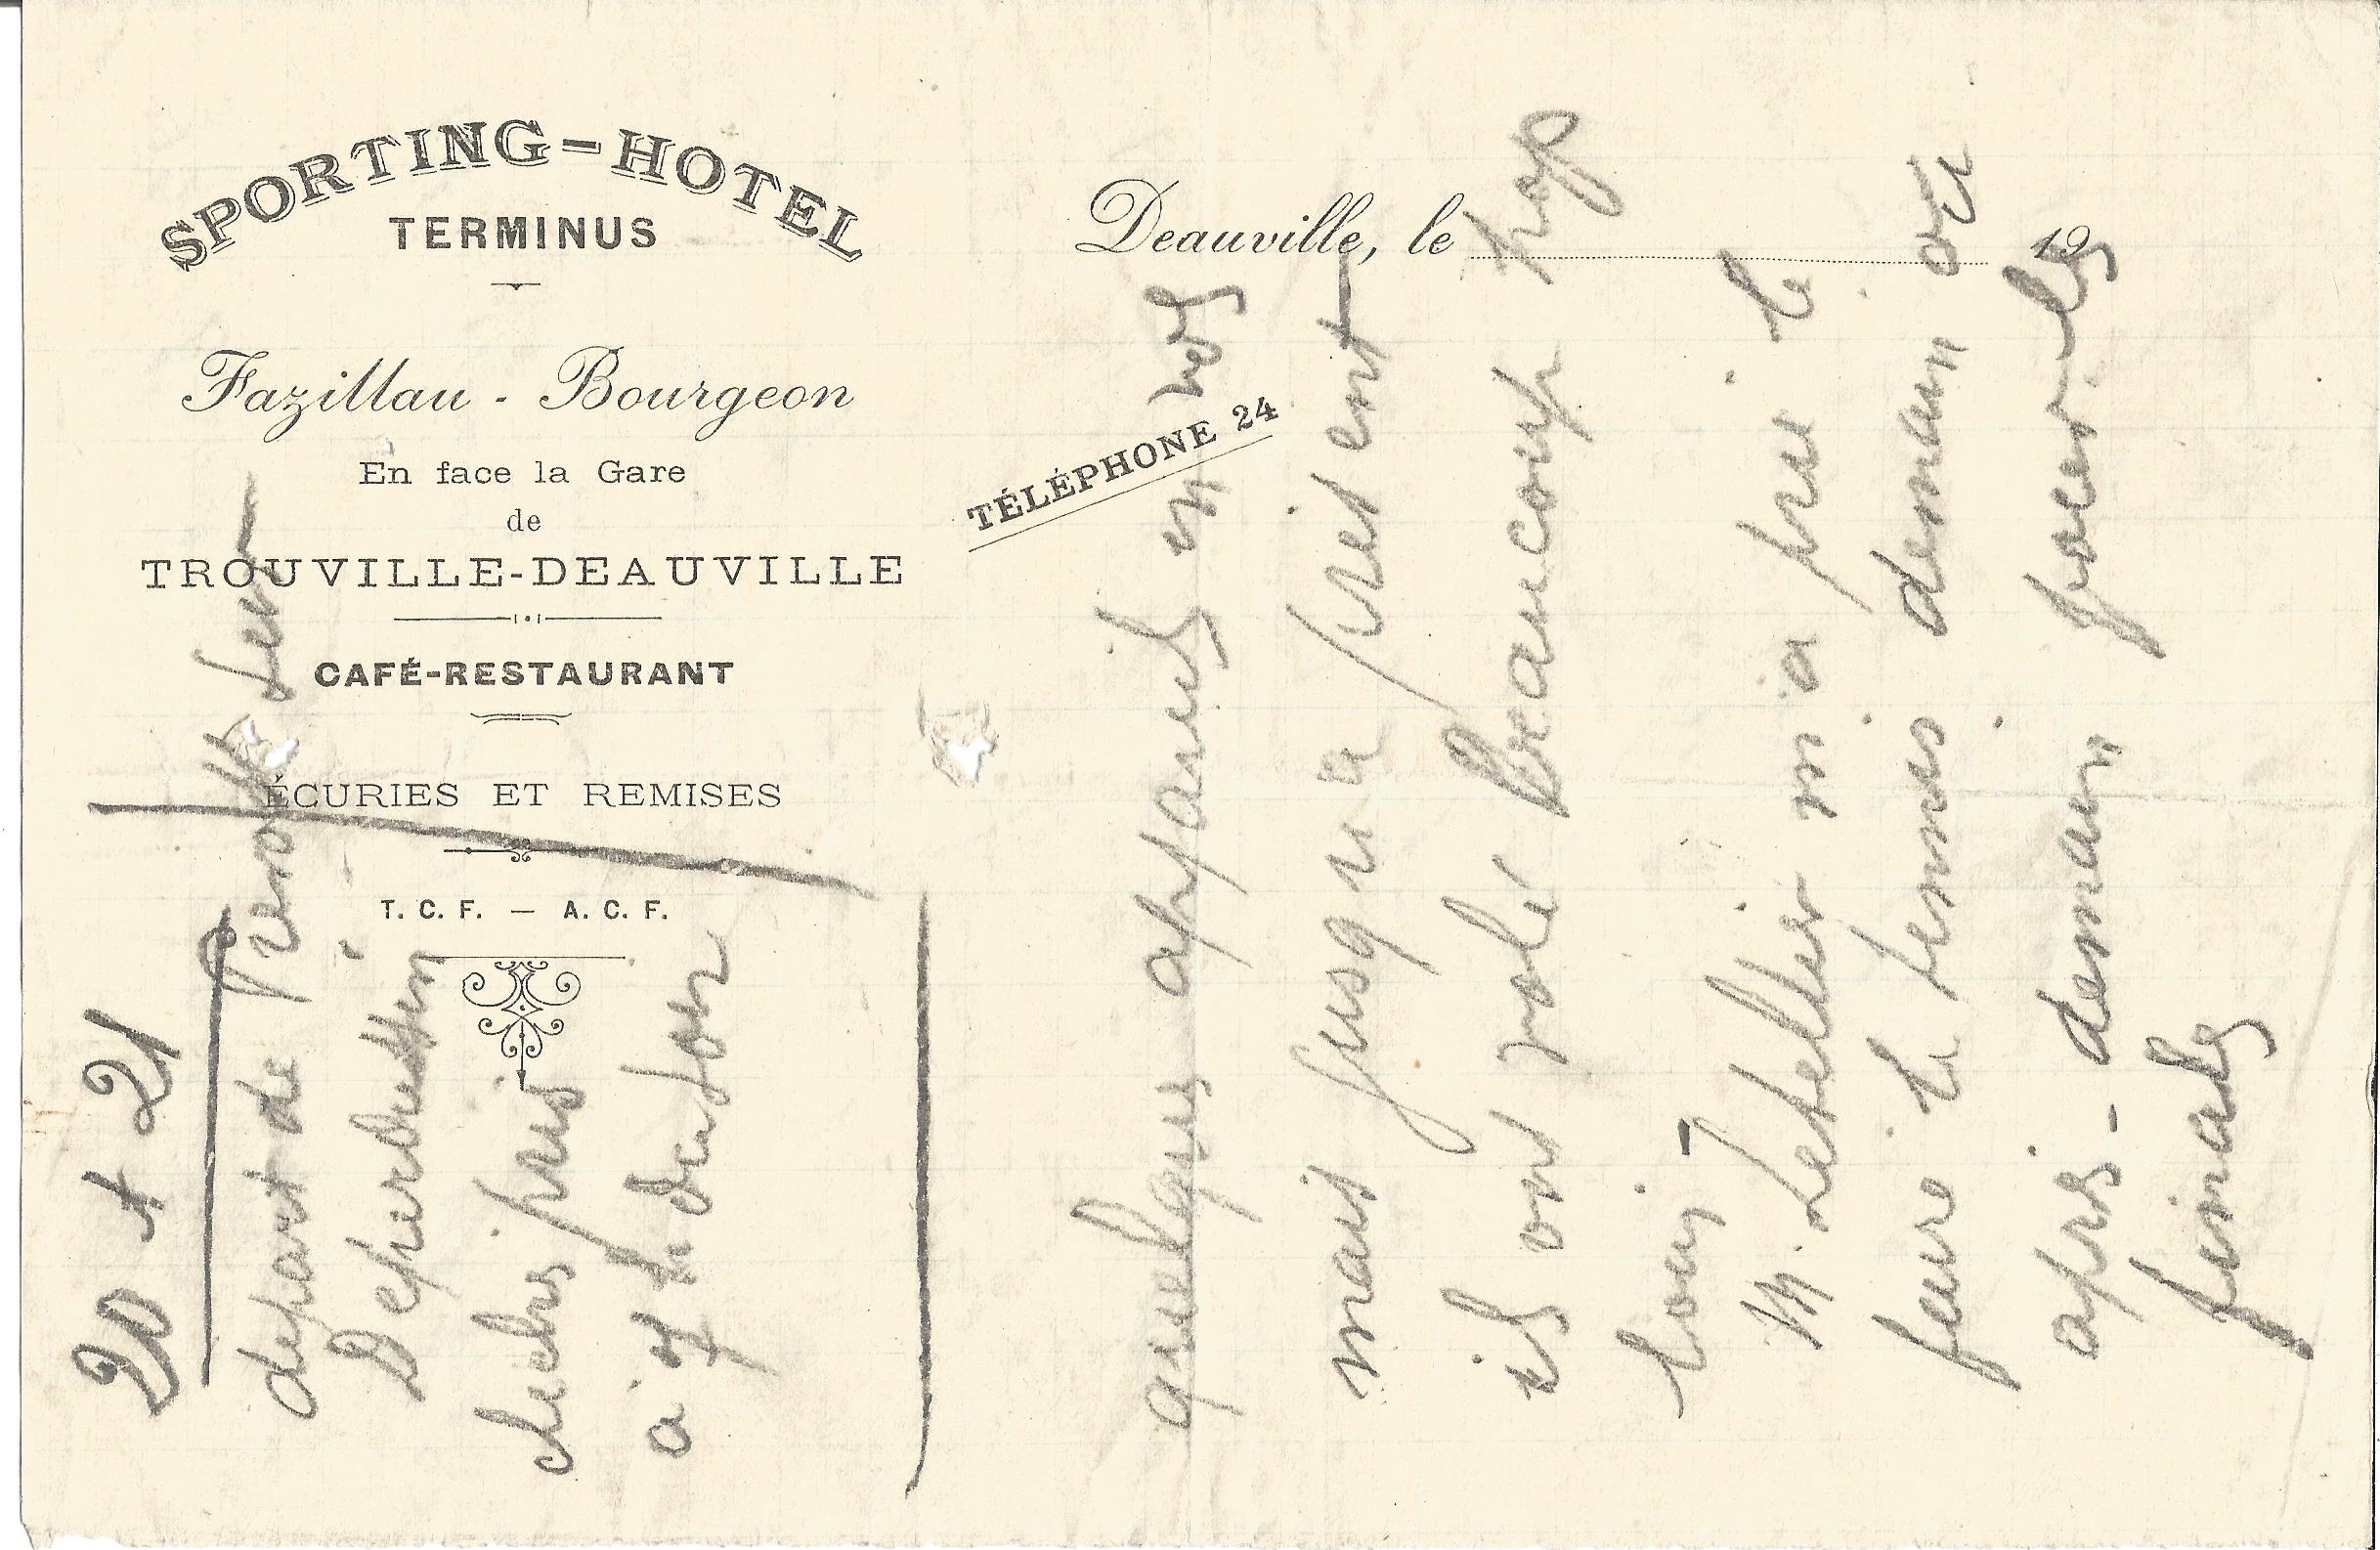 Lot 52 - Great War Sporting Hotel Trouville hand written dinner menu. Good condition Est.